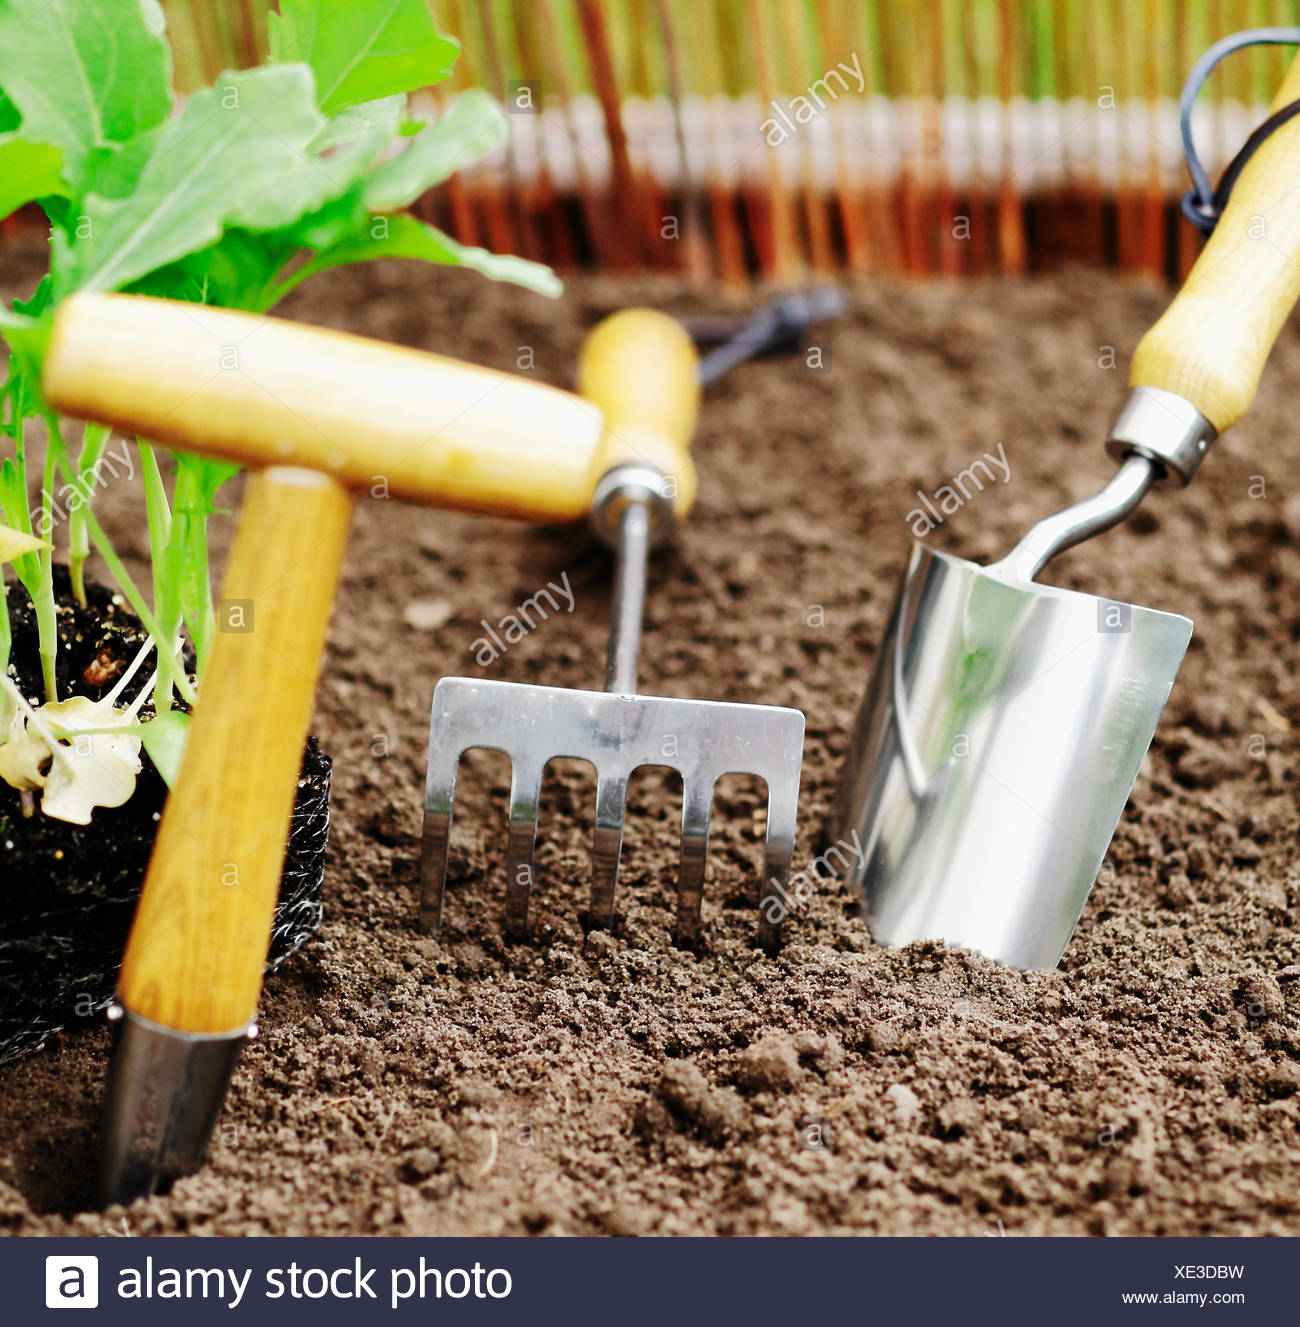 Earth auger stock photos earth auger stock images alamy for Soil utensils